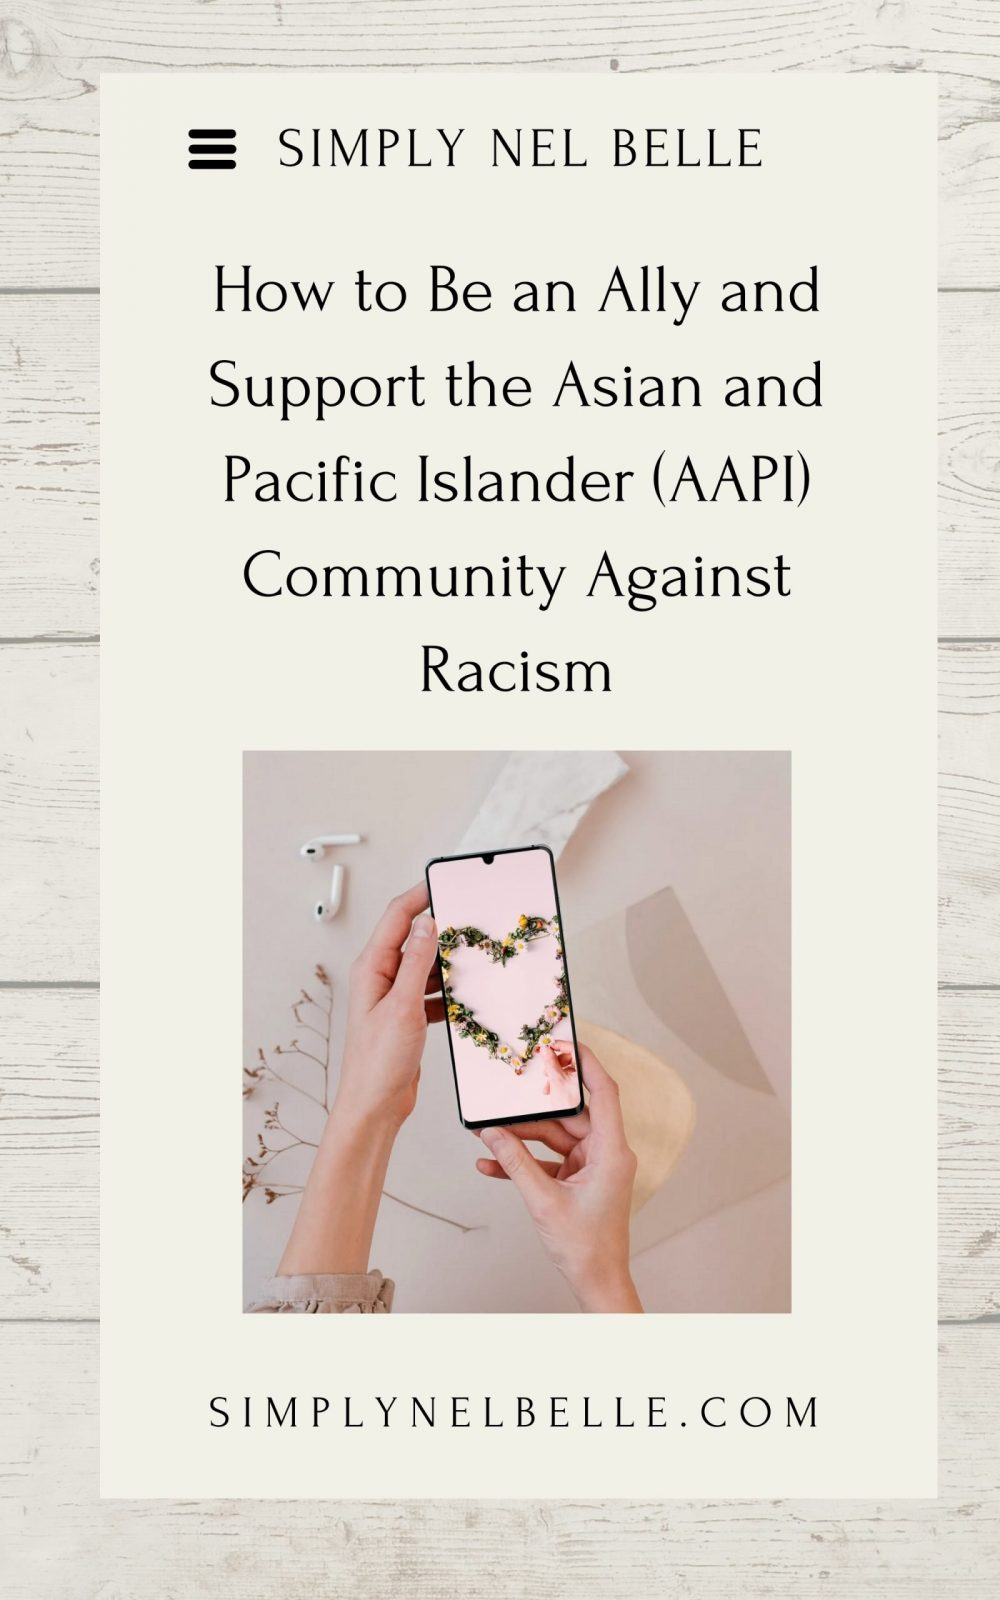 How to Be an Ally and Support the Asian and Pacific Islander (AAPI) Community Against Racism. Simply Nel Belle Blog.